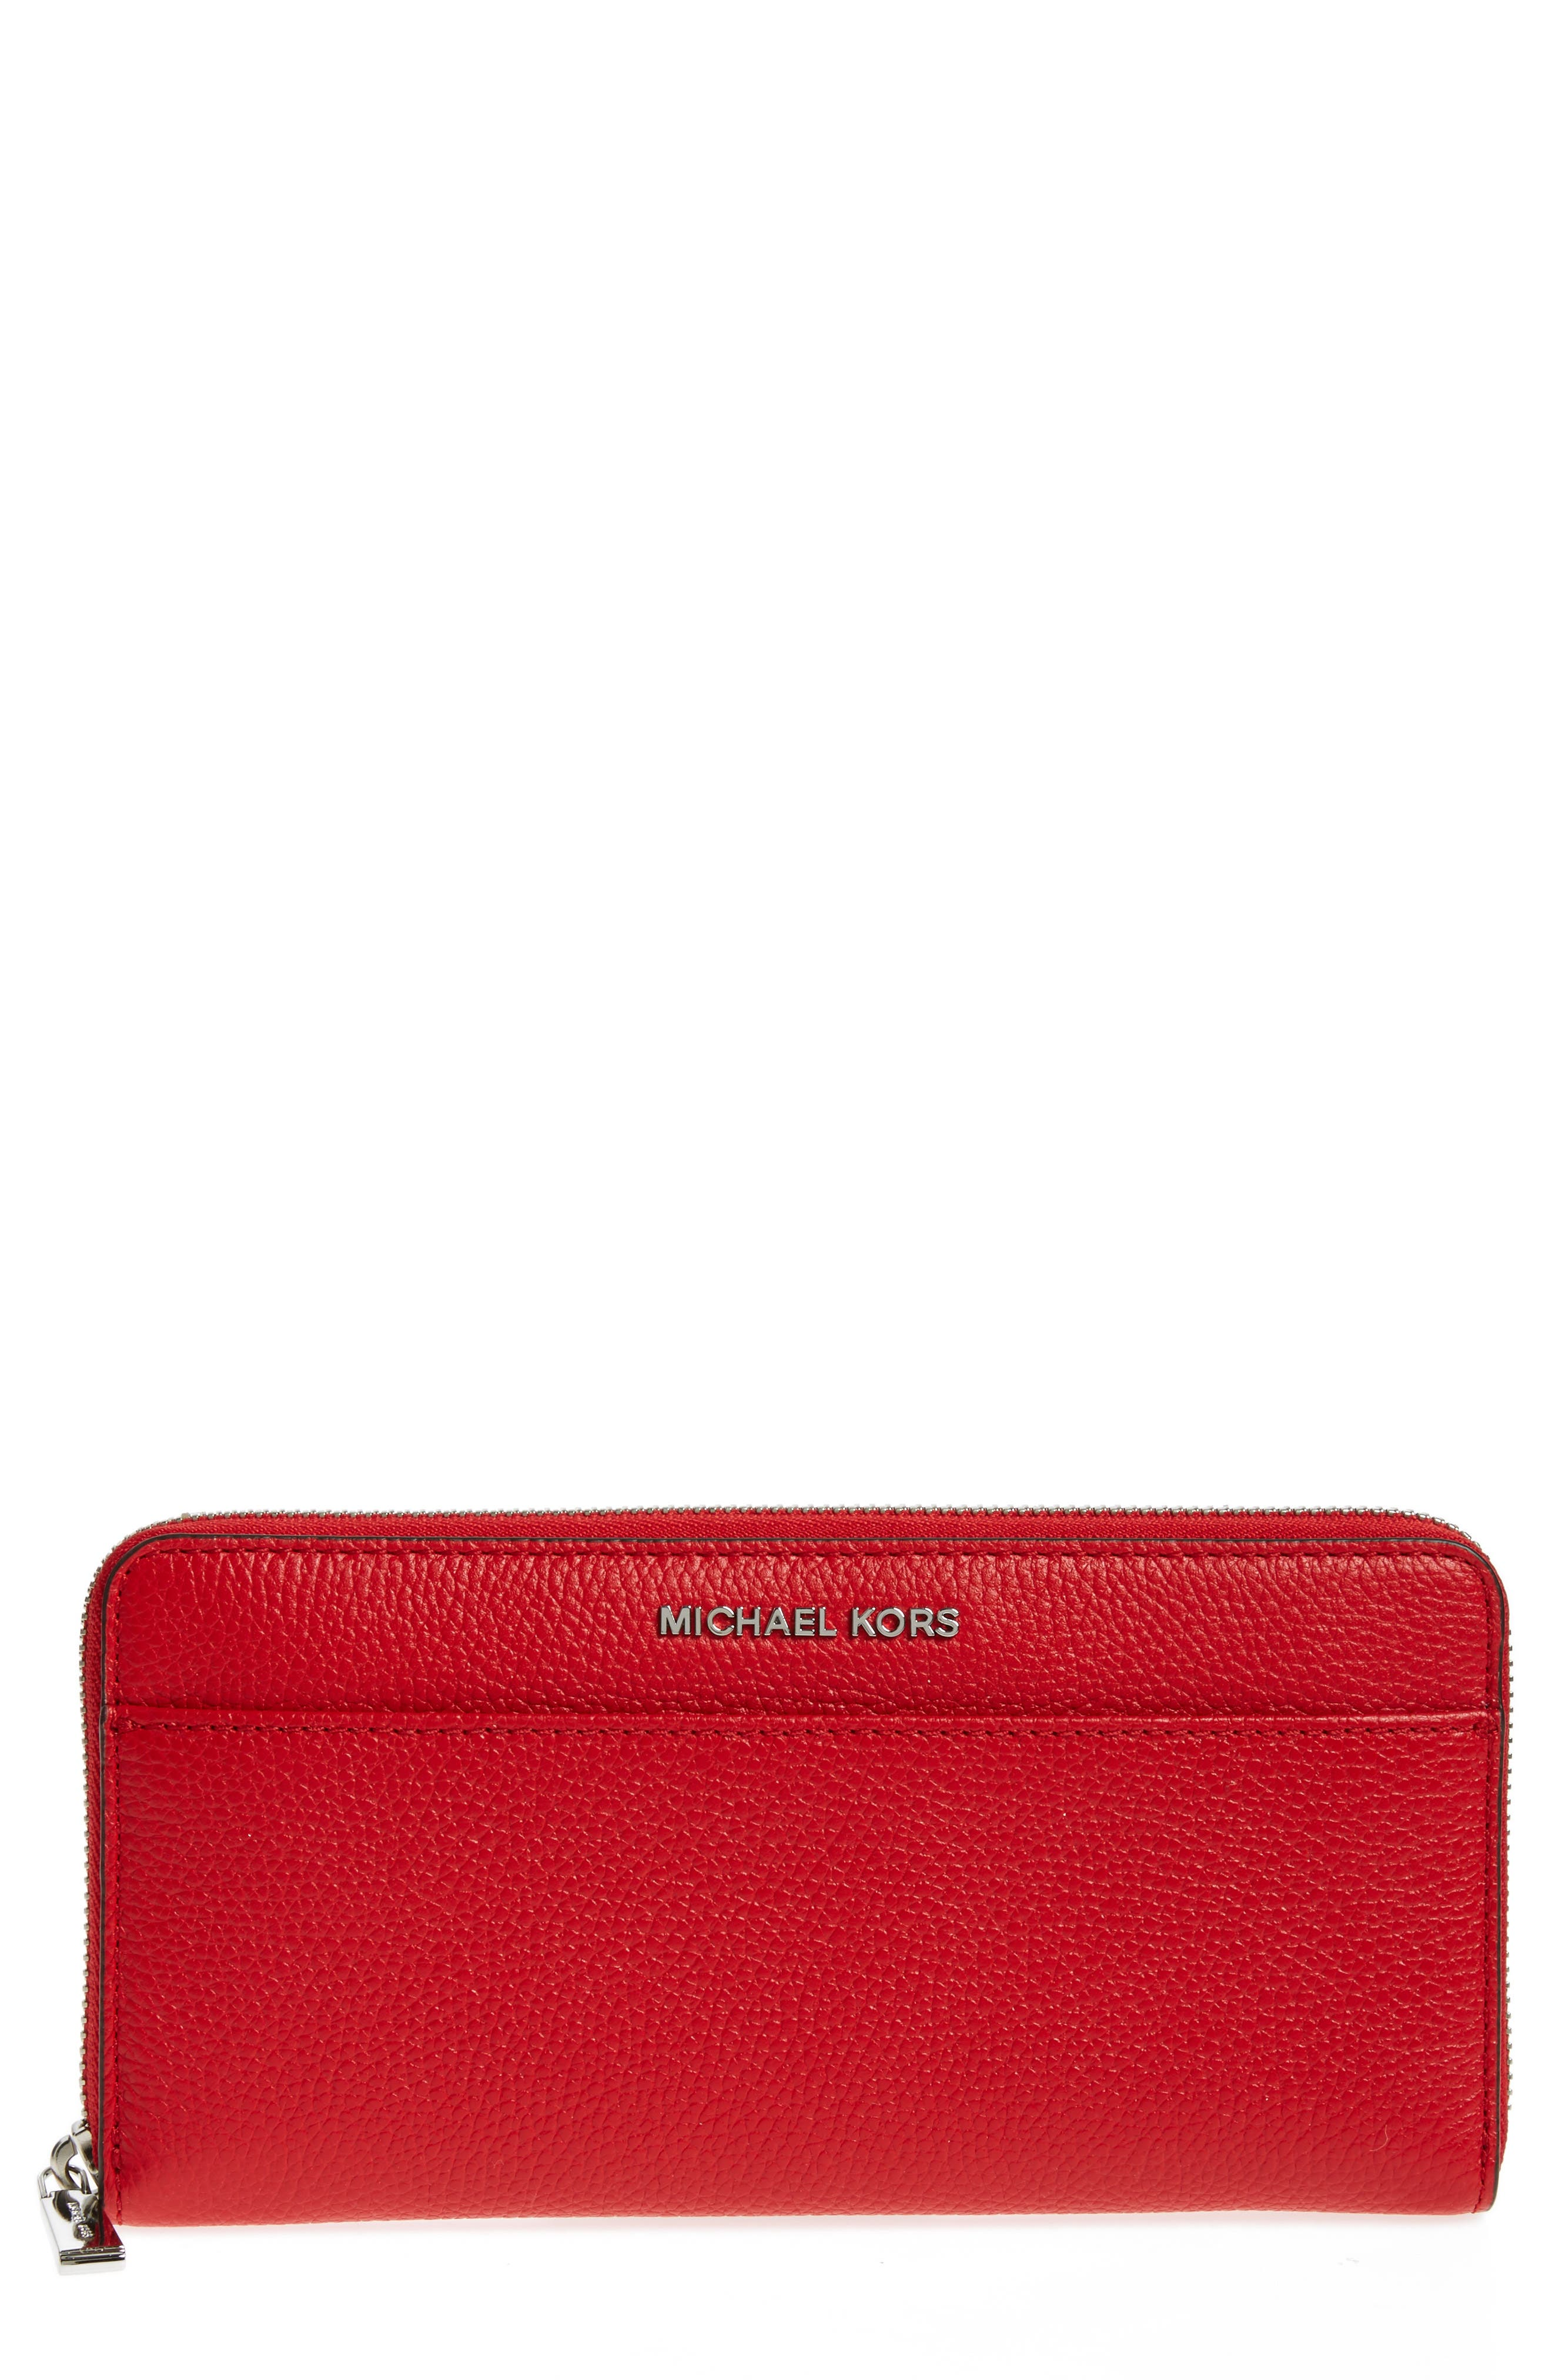 Mercer Leather Continental Wallet,                             Main thumbnail 1, color,                             Bright Red